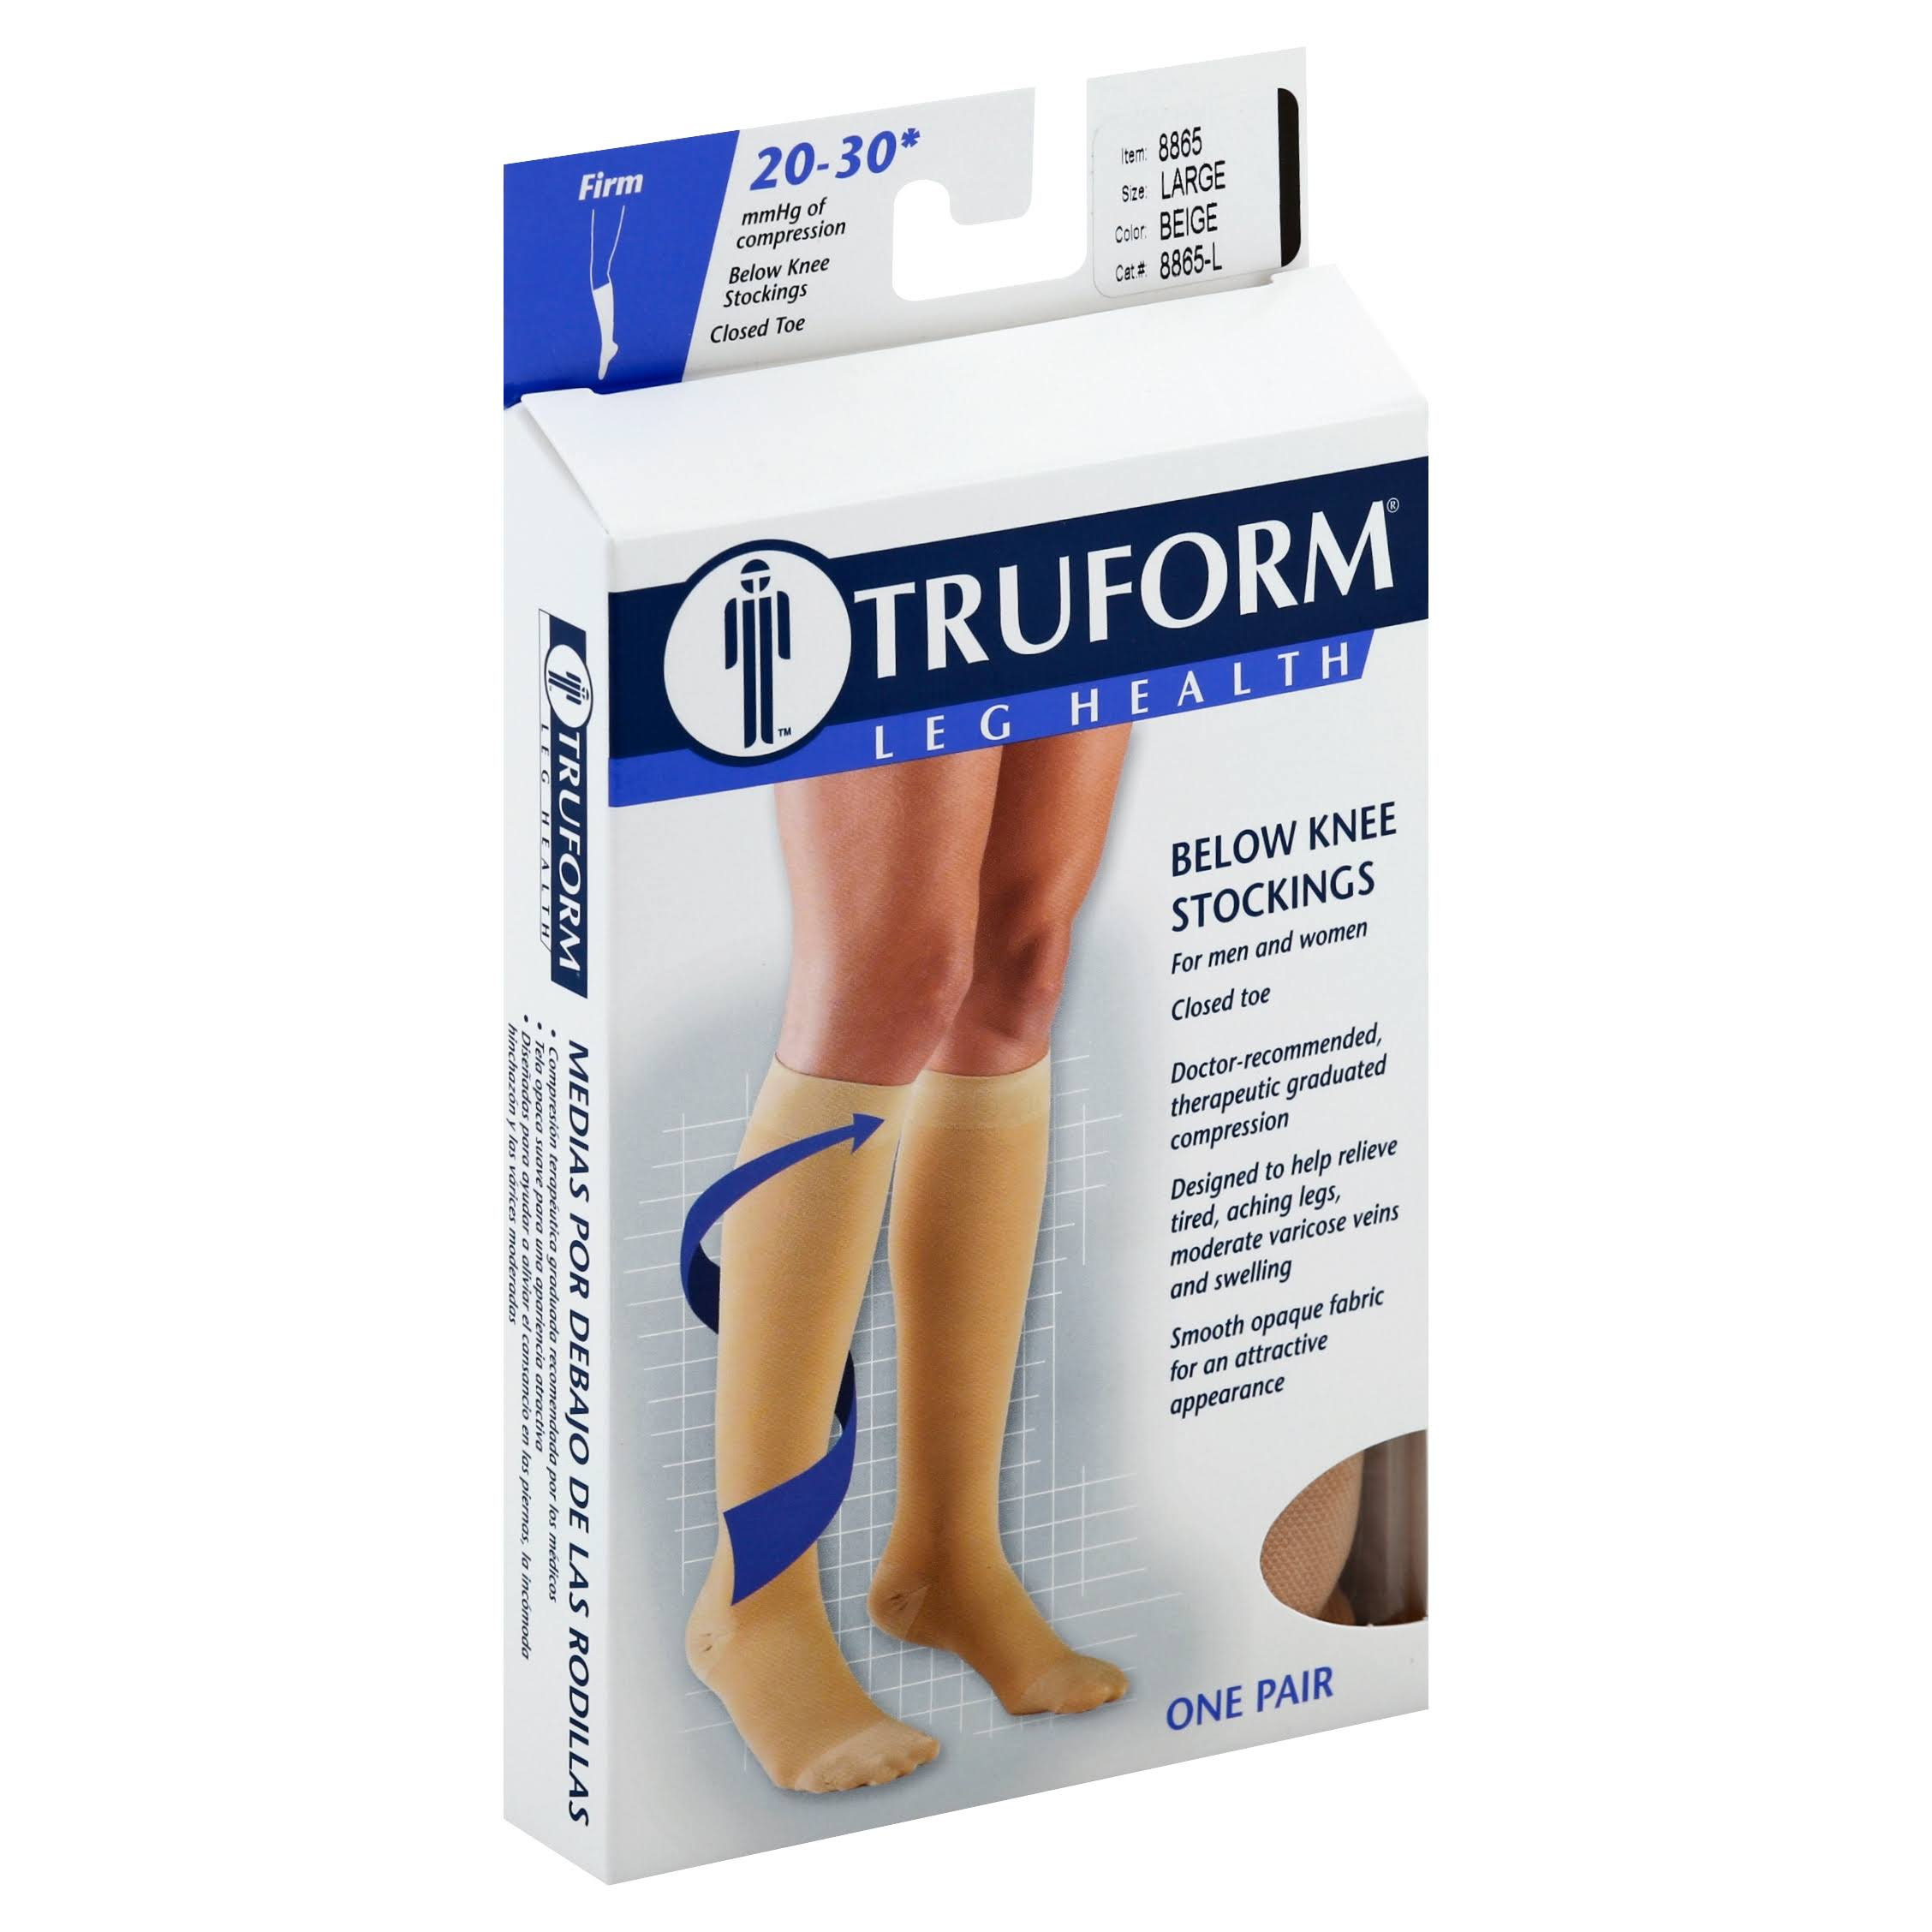 Truform Closed Toe Knee High Compression Stockings - Beige, Large, One Pair